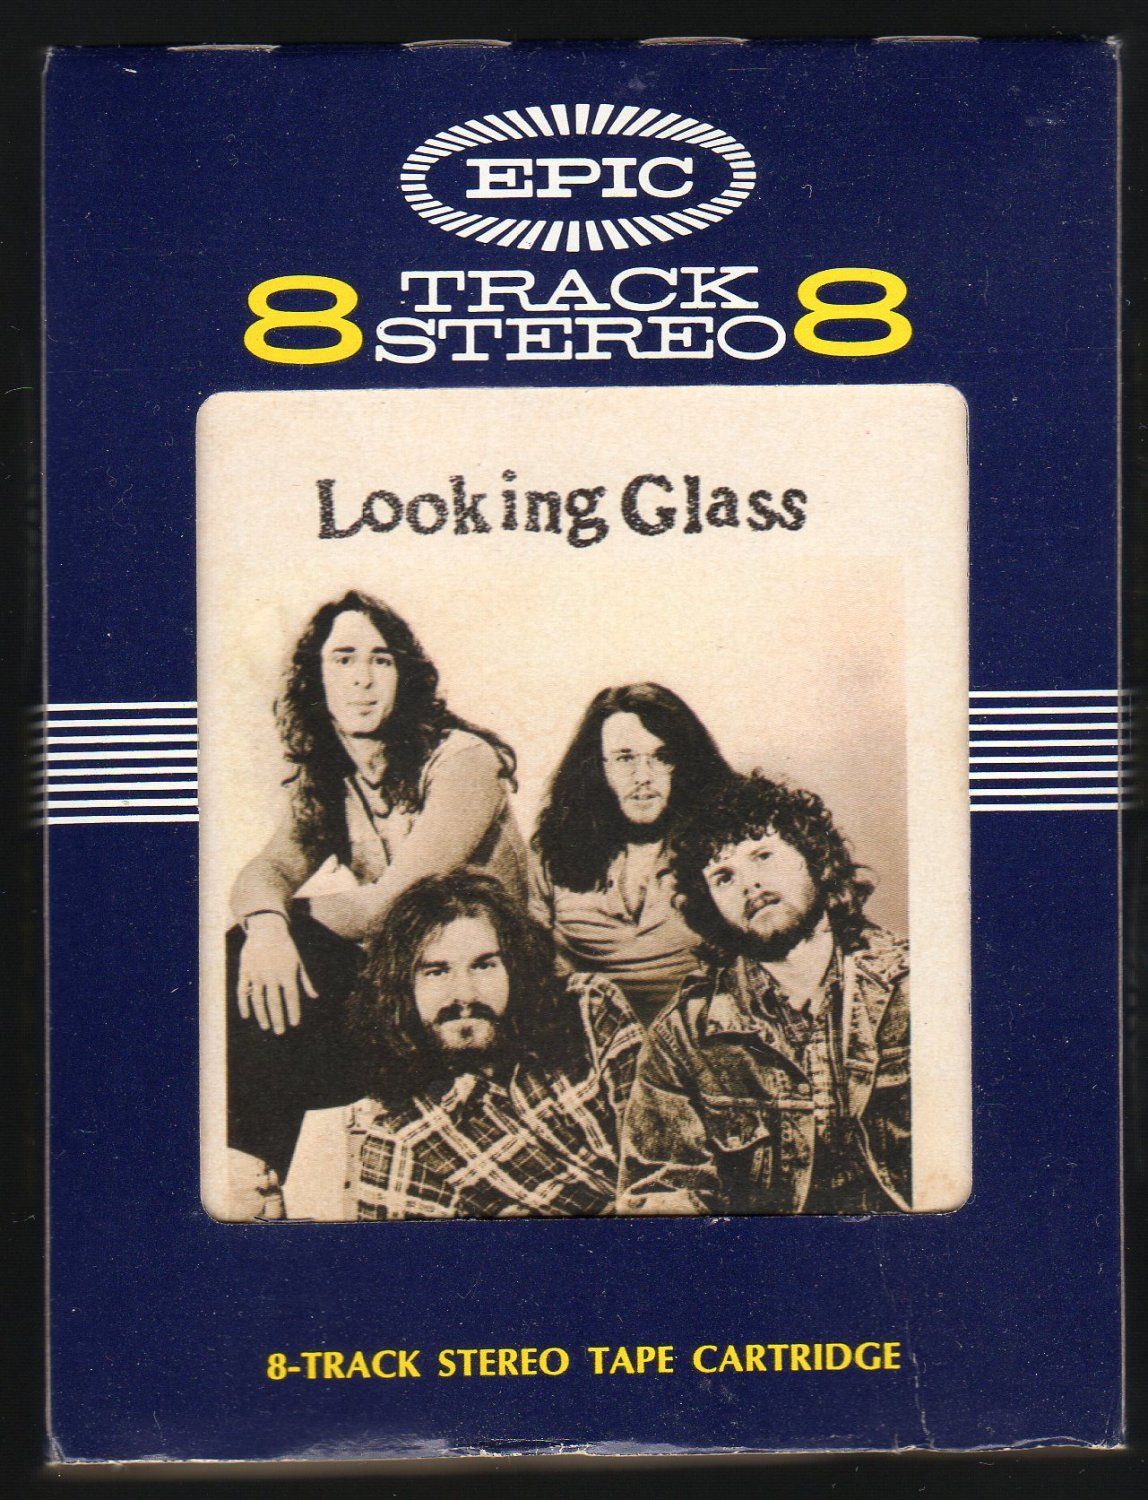 Looking Glass - Looking Glass 1972 Debut EPIC T5 8-track tape